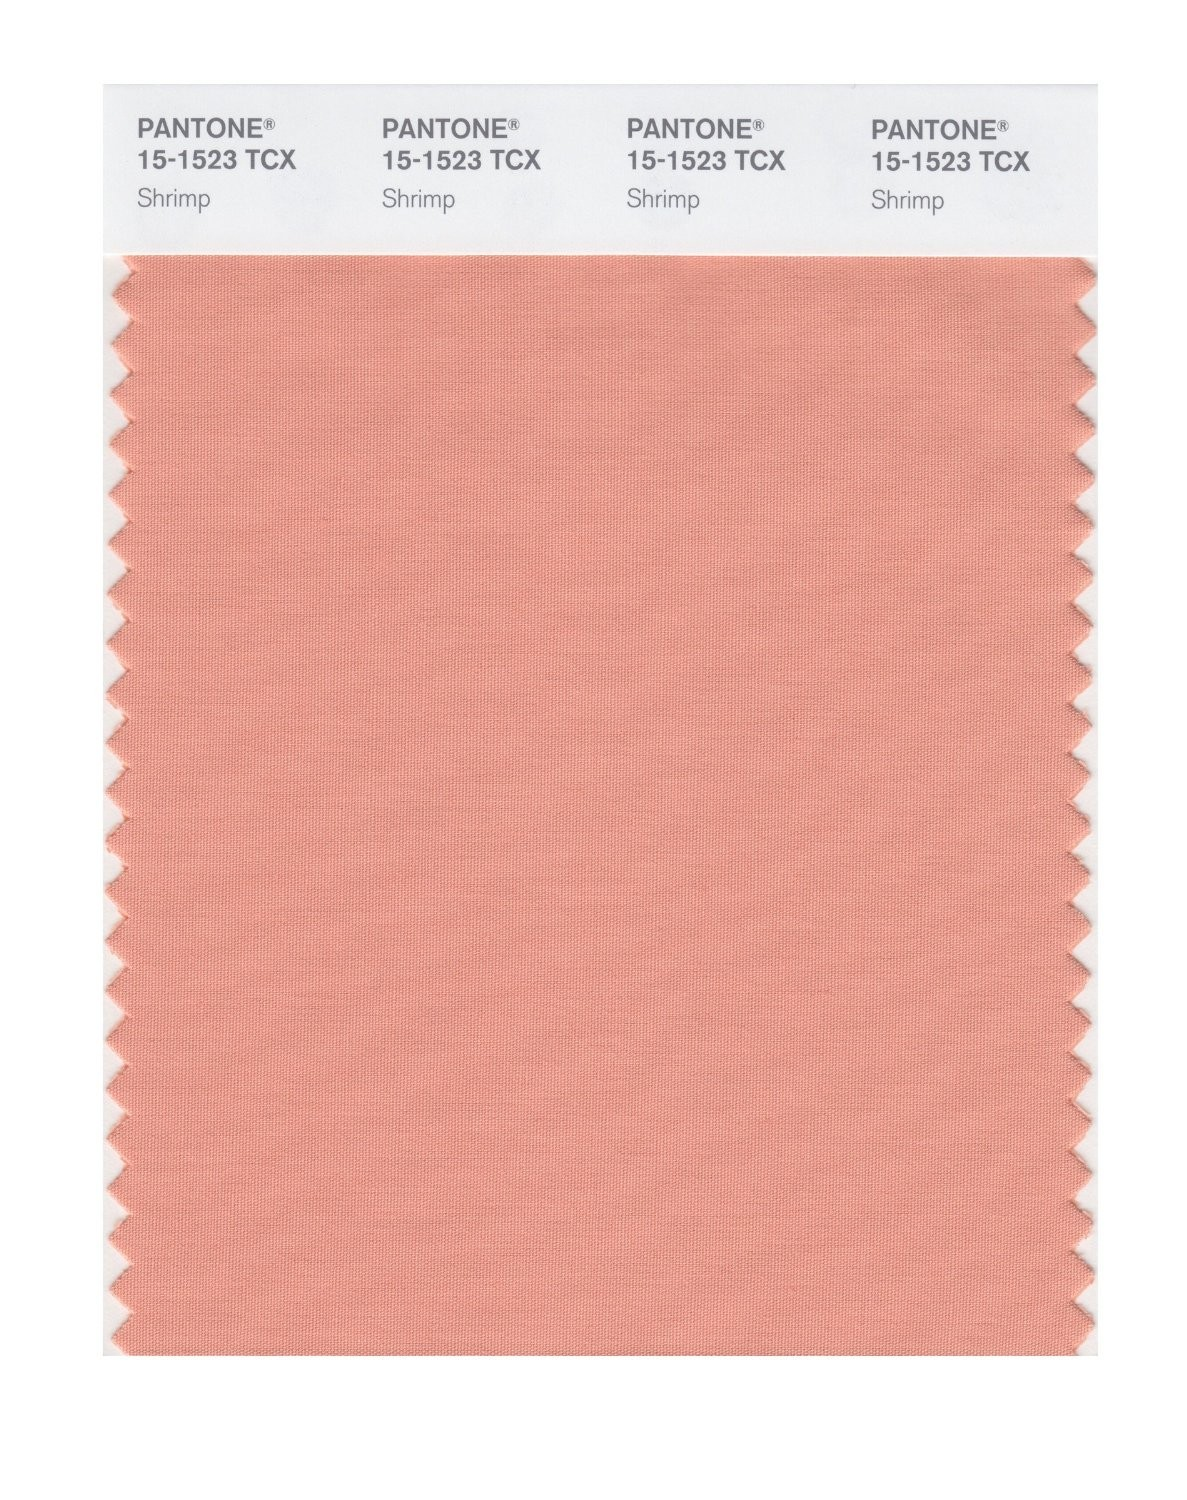 Pantone 15-1523 TCX Swatch Card Shrimp